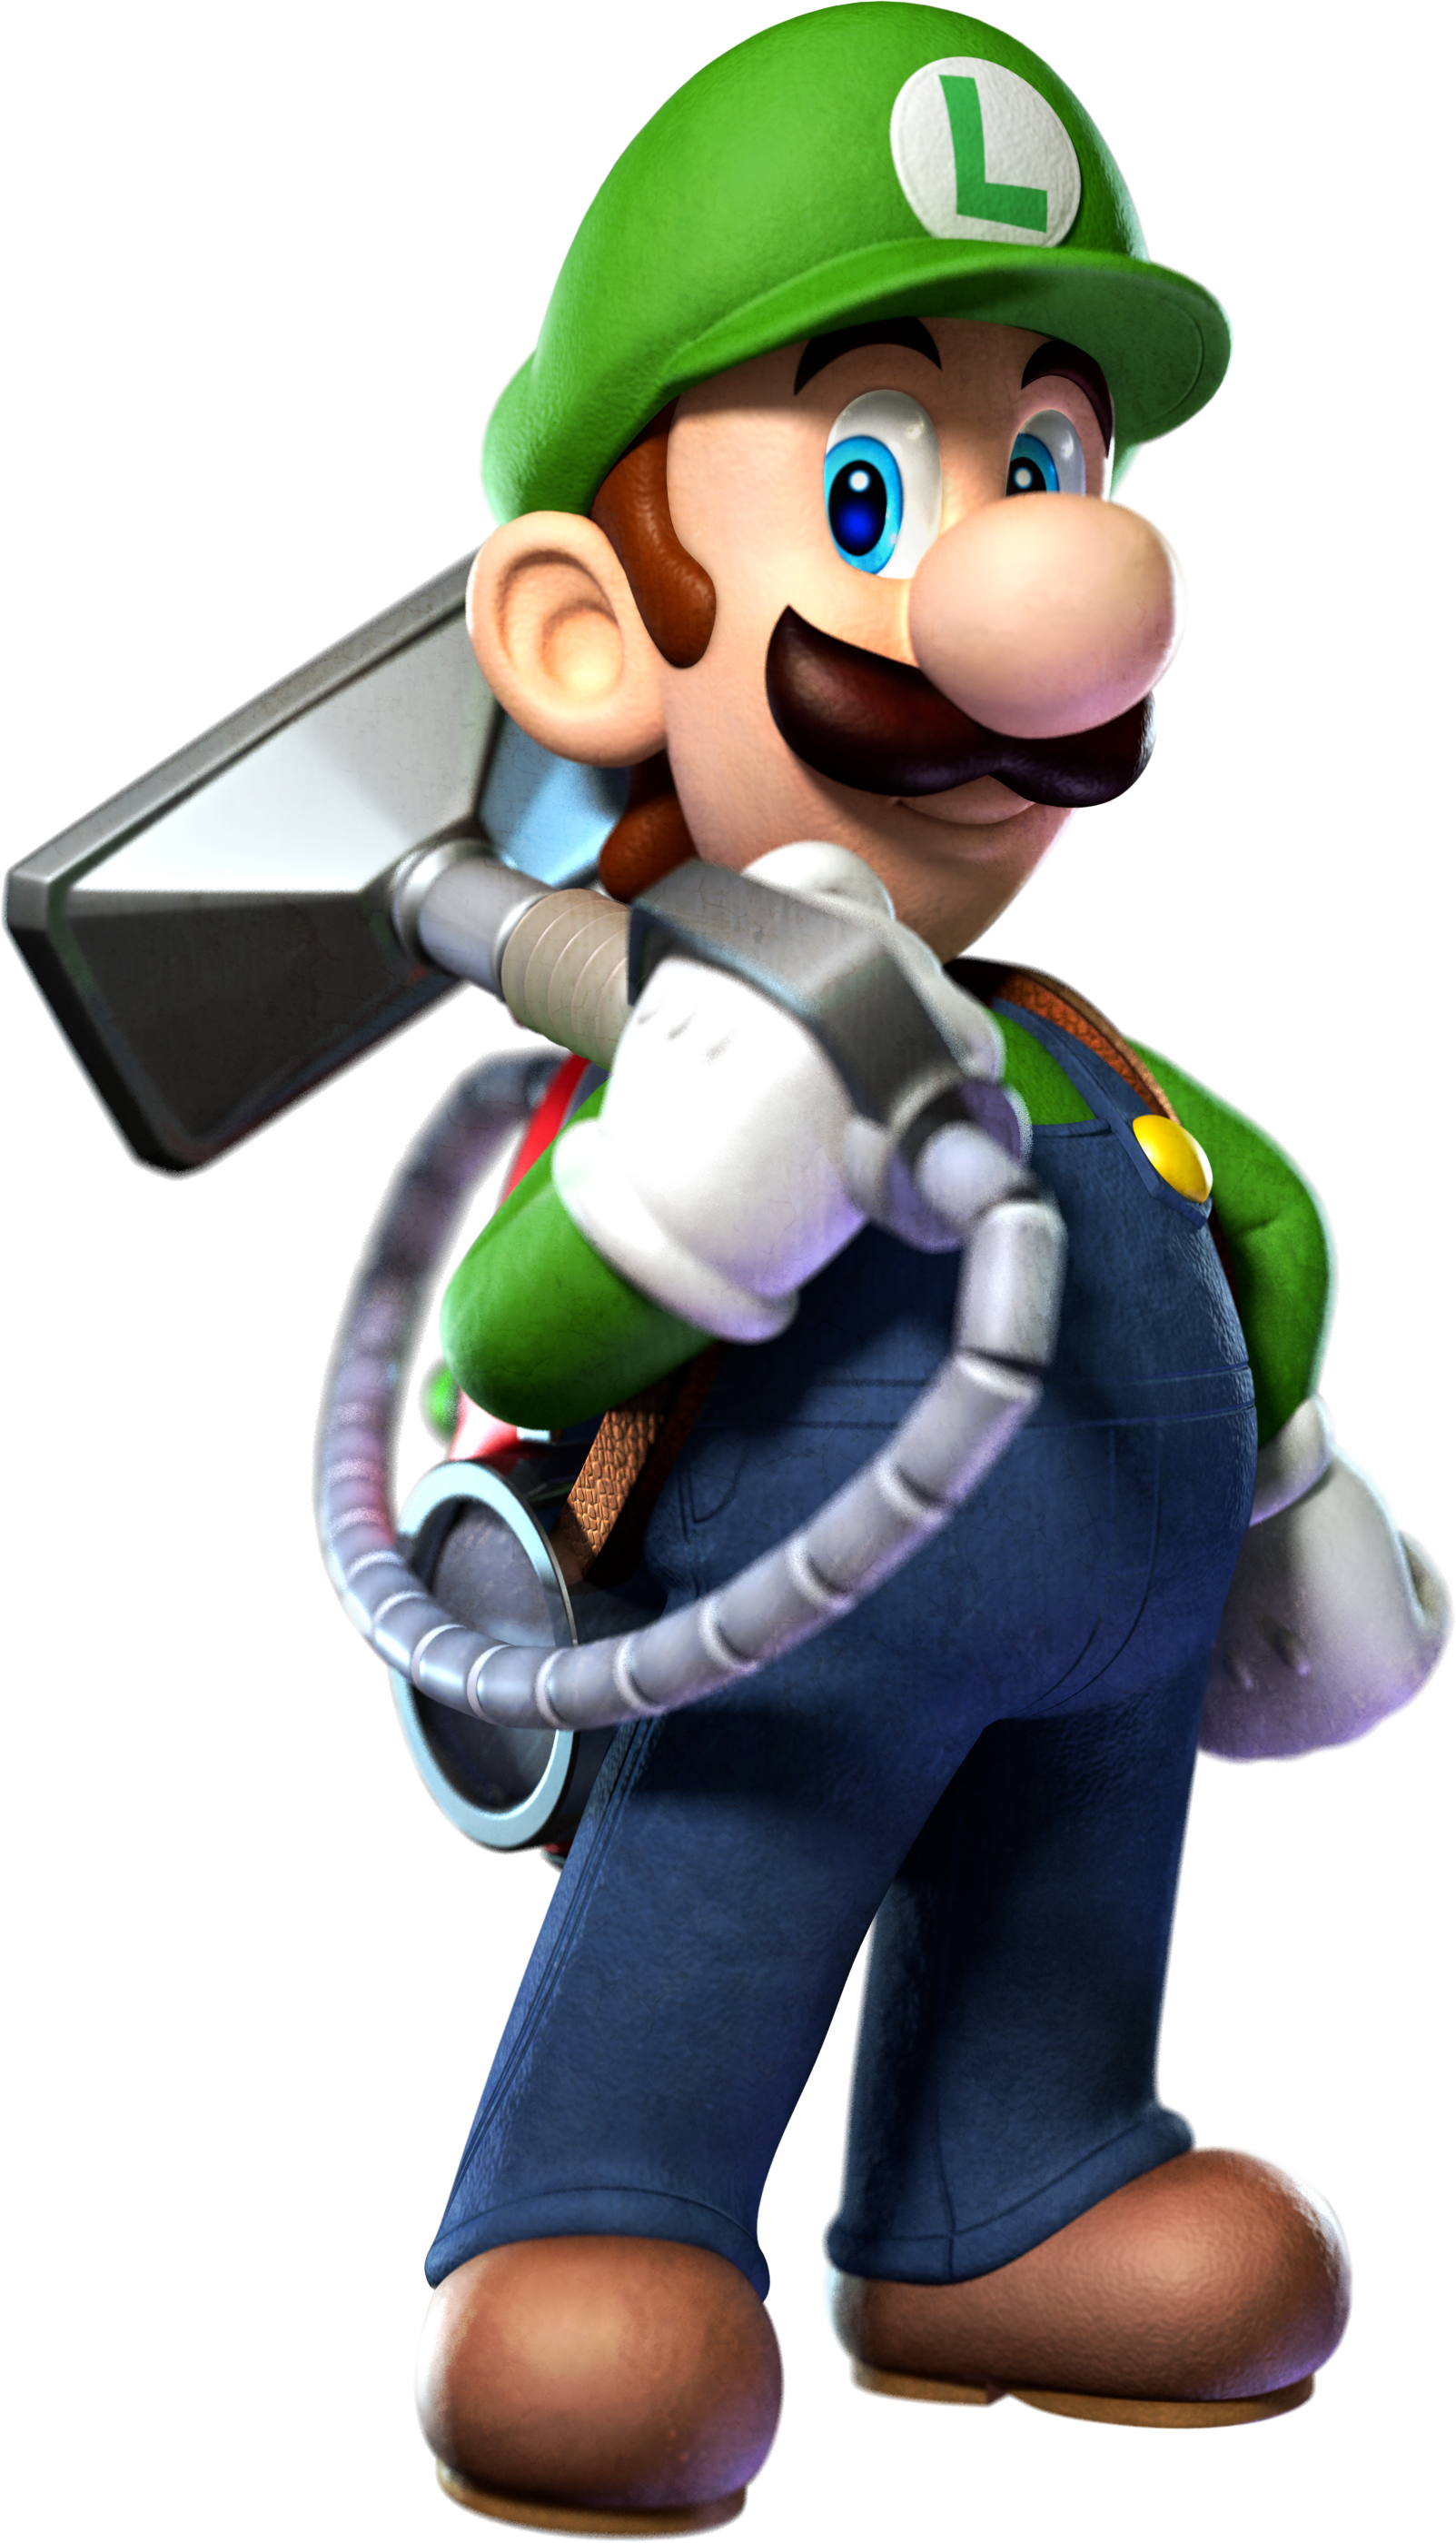 I'm scared of ghosts. Luigi_Pose_-_Luigi%27s_Mansion_Dark_Moon